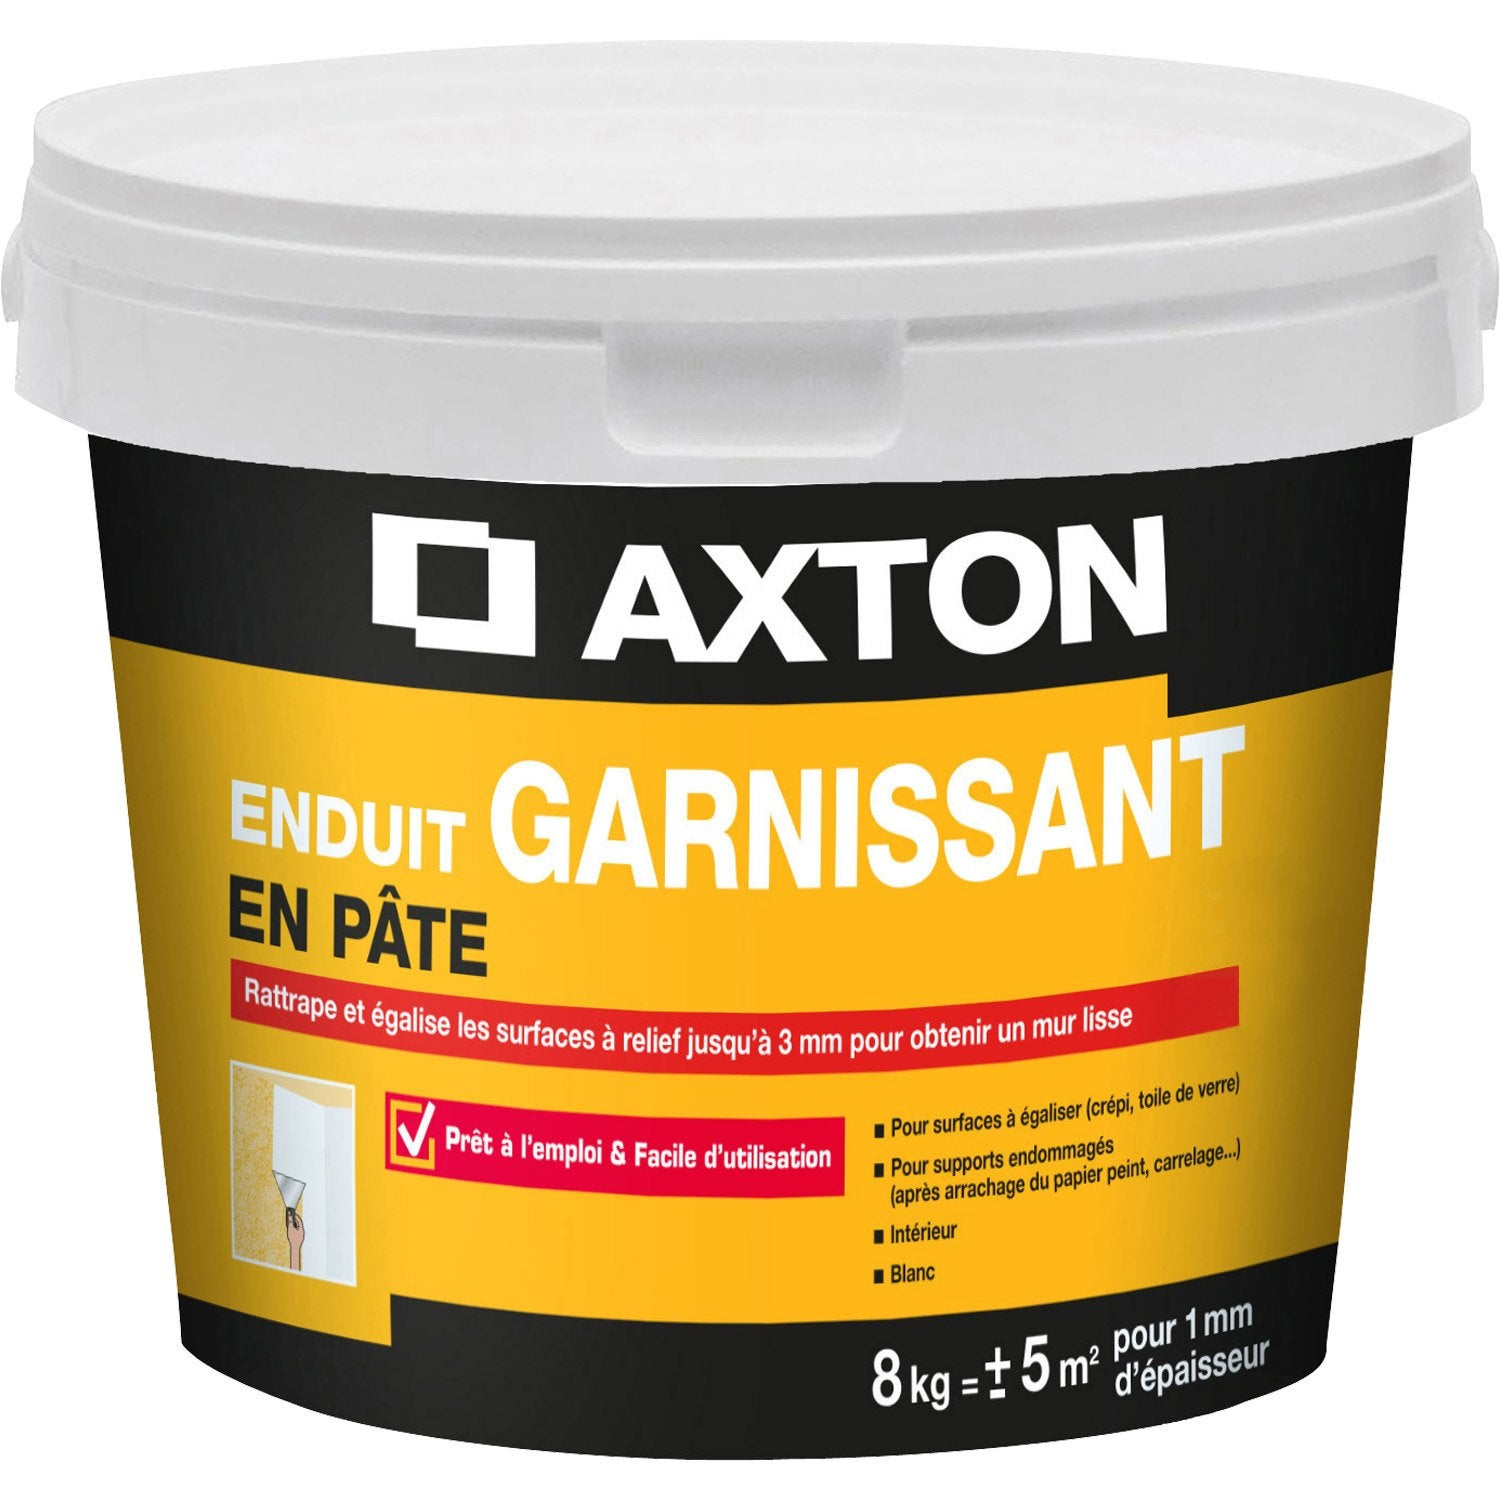 Enduit de r novation et garnissant p te blanc axton 8 kg leroy merlin - Enduit de renovation reliss ...